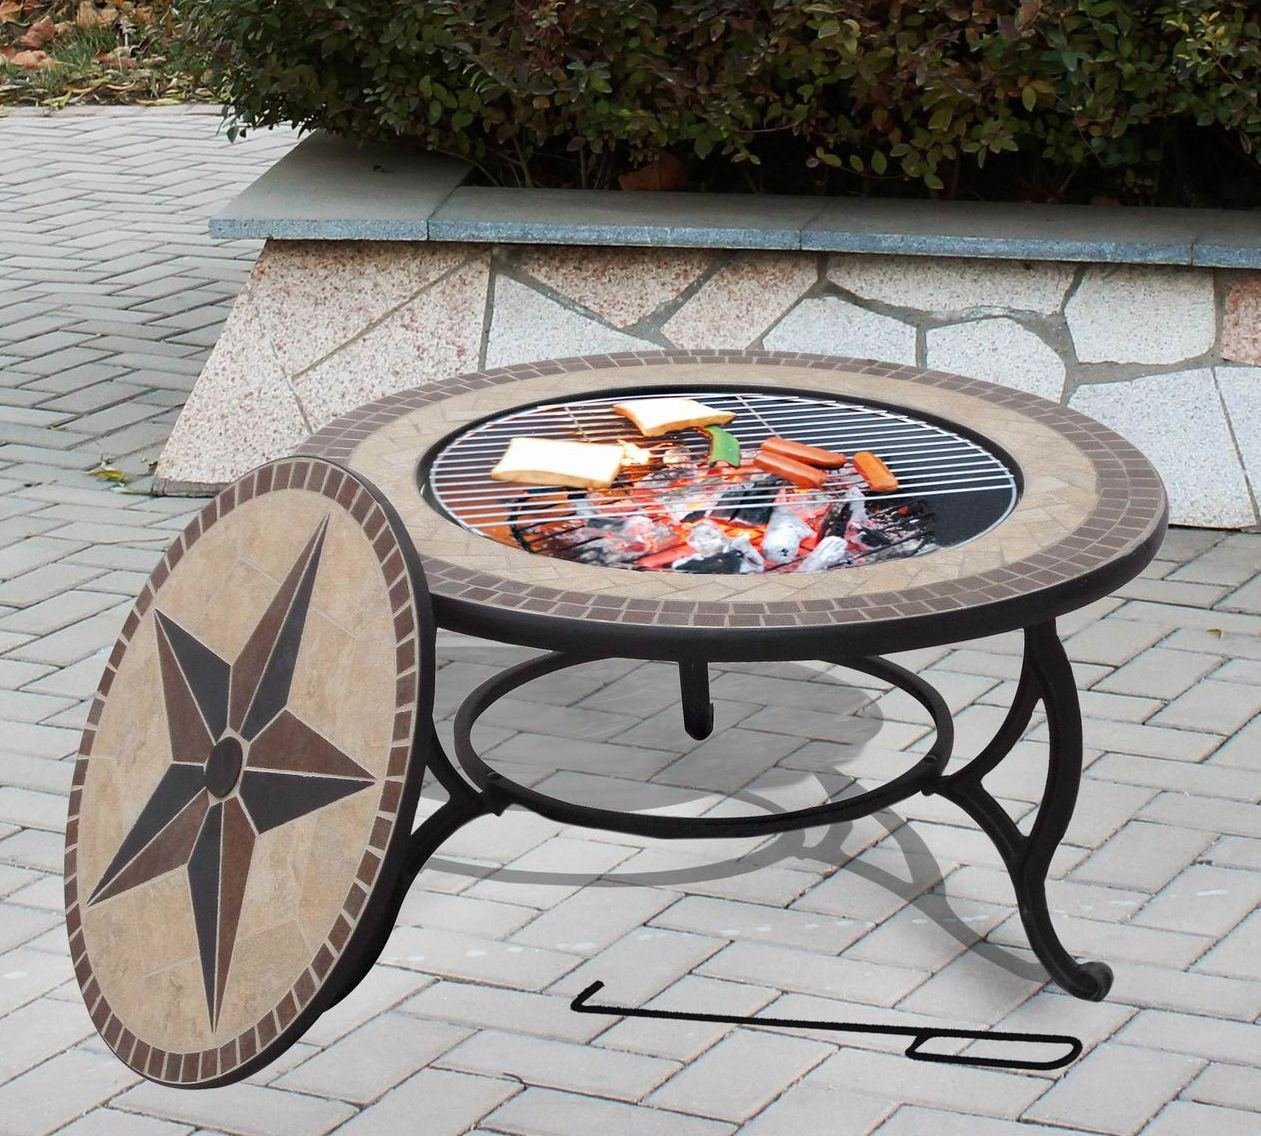 SALTILLO Beautiful Garden BBQ Fire Pit Mosaic Table Fire Bowl